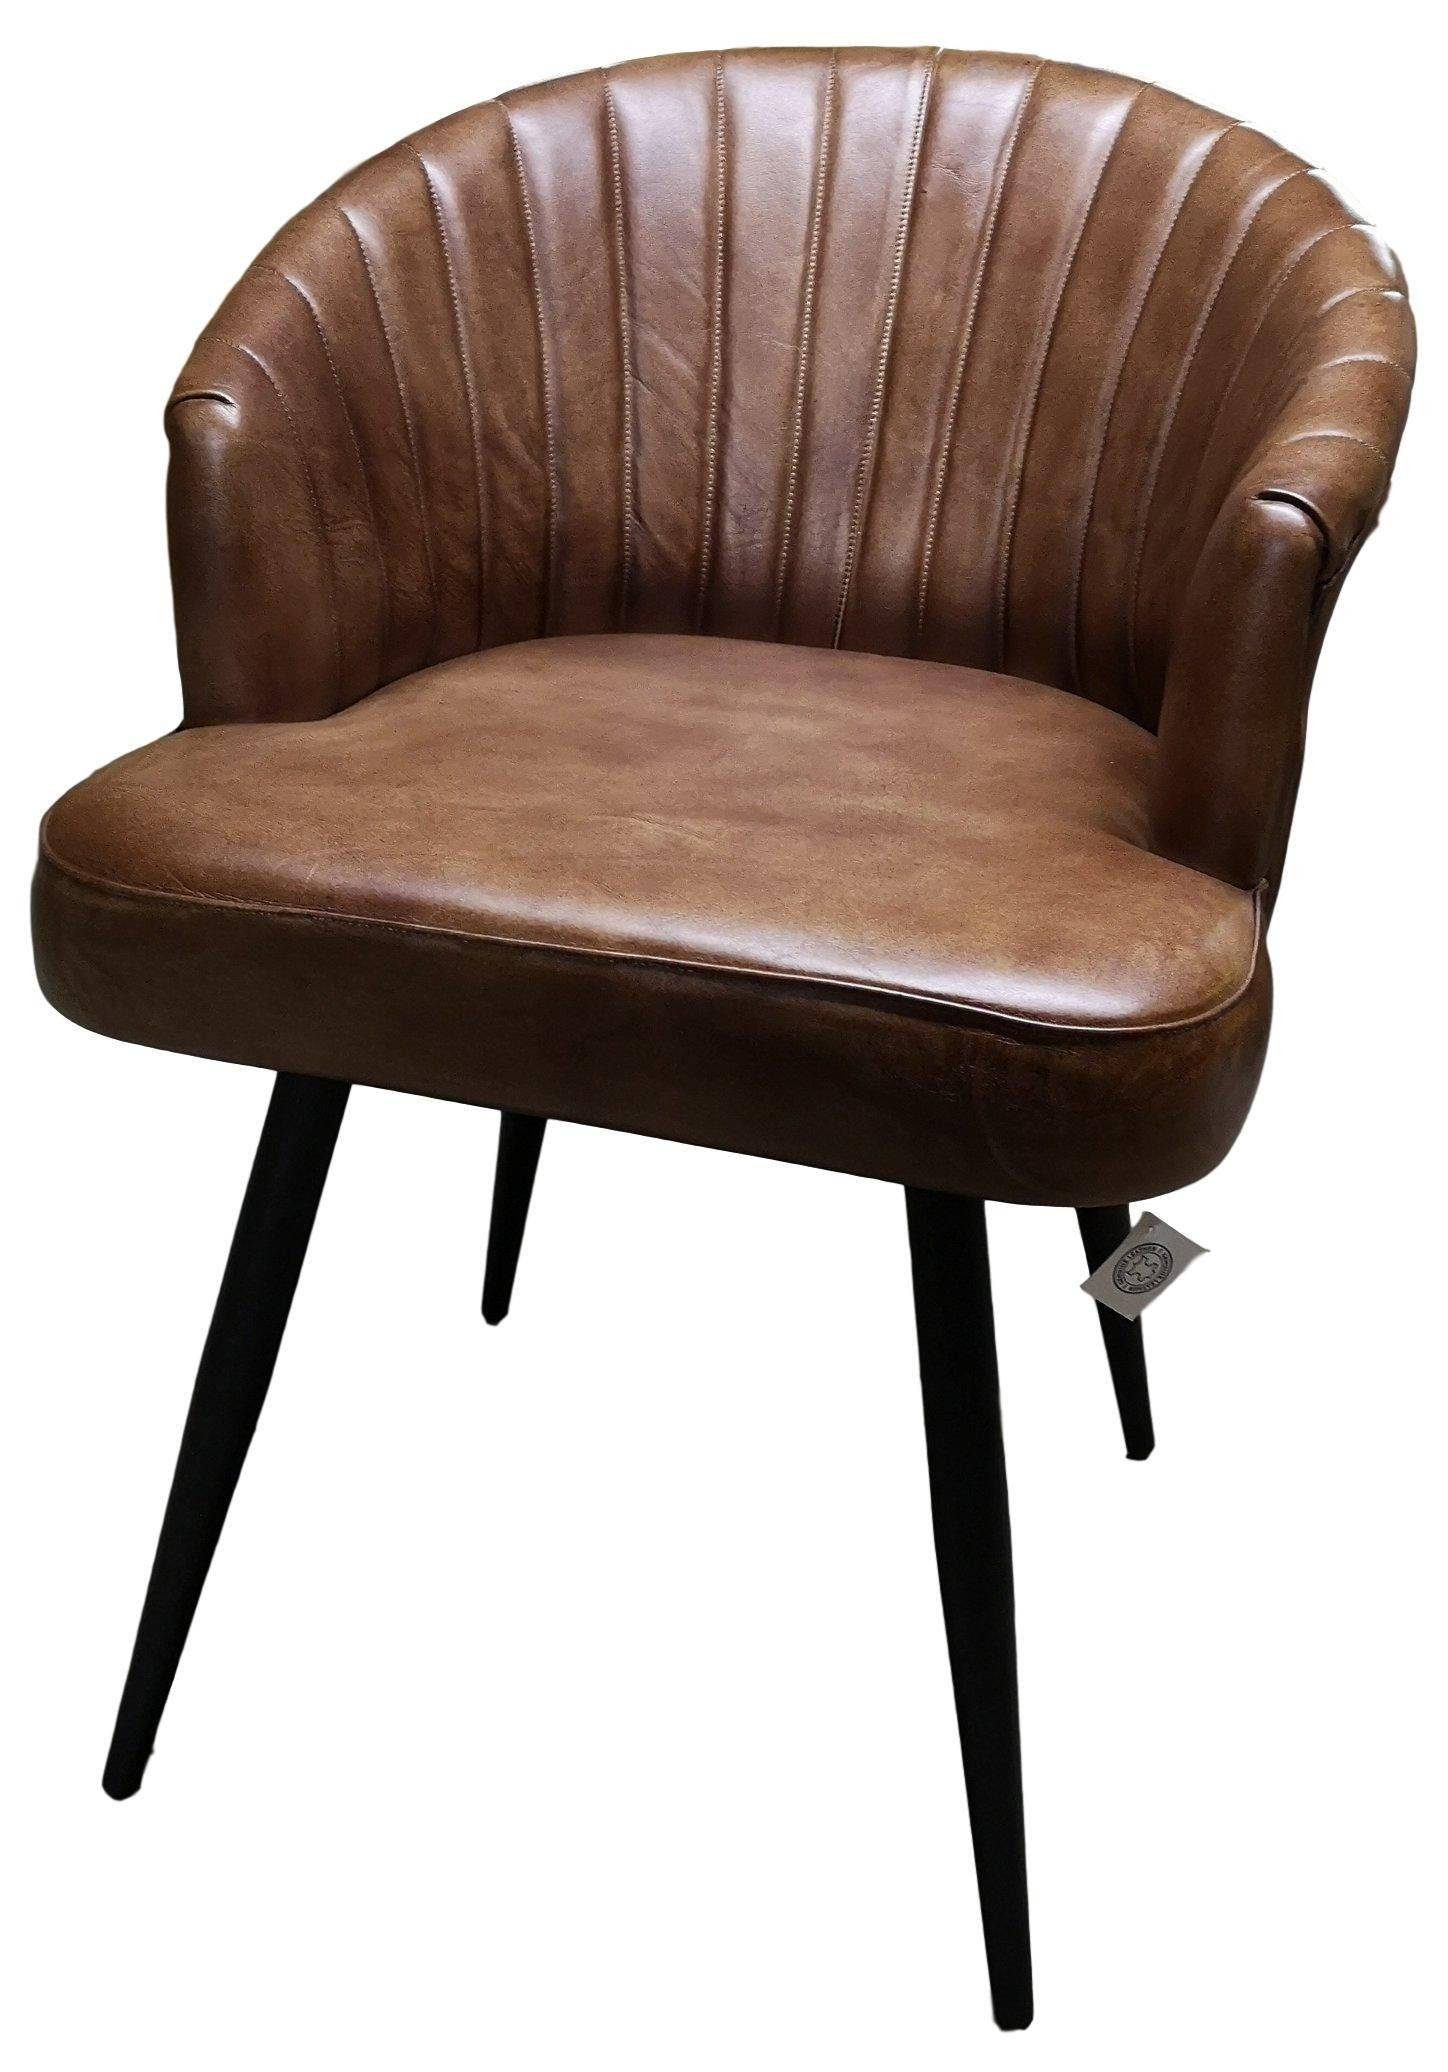 Genuine Brown Cowhide Leather Bucket Style Seat Dining Chair